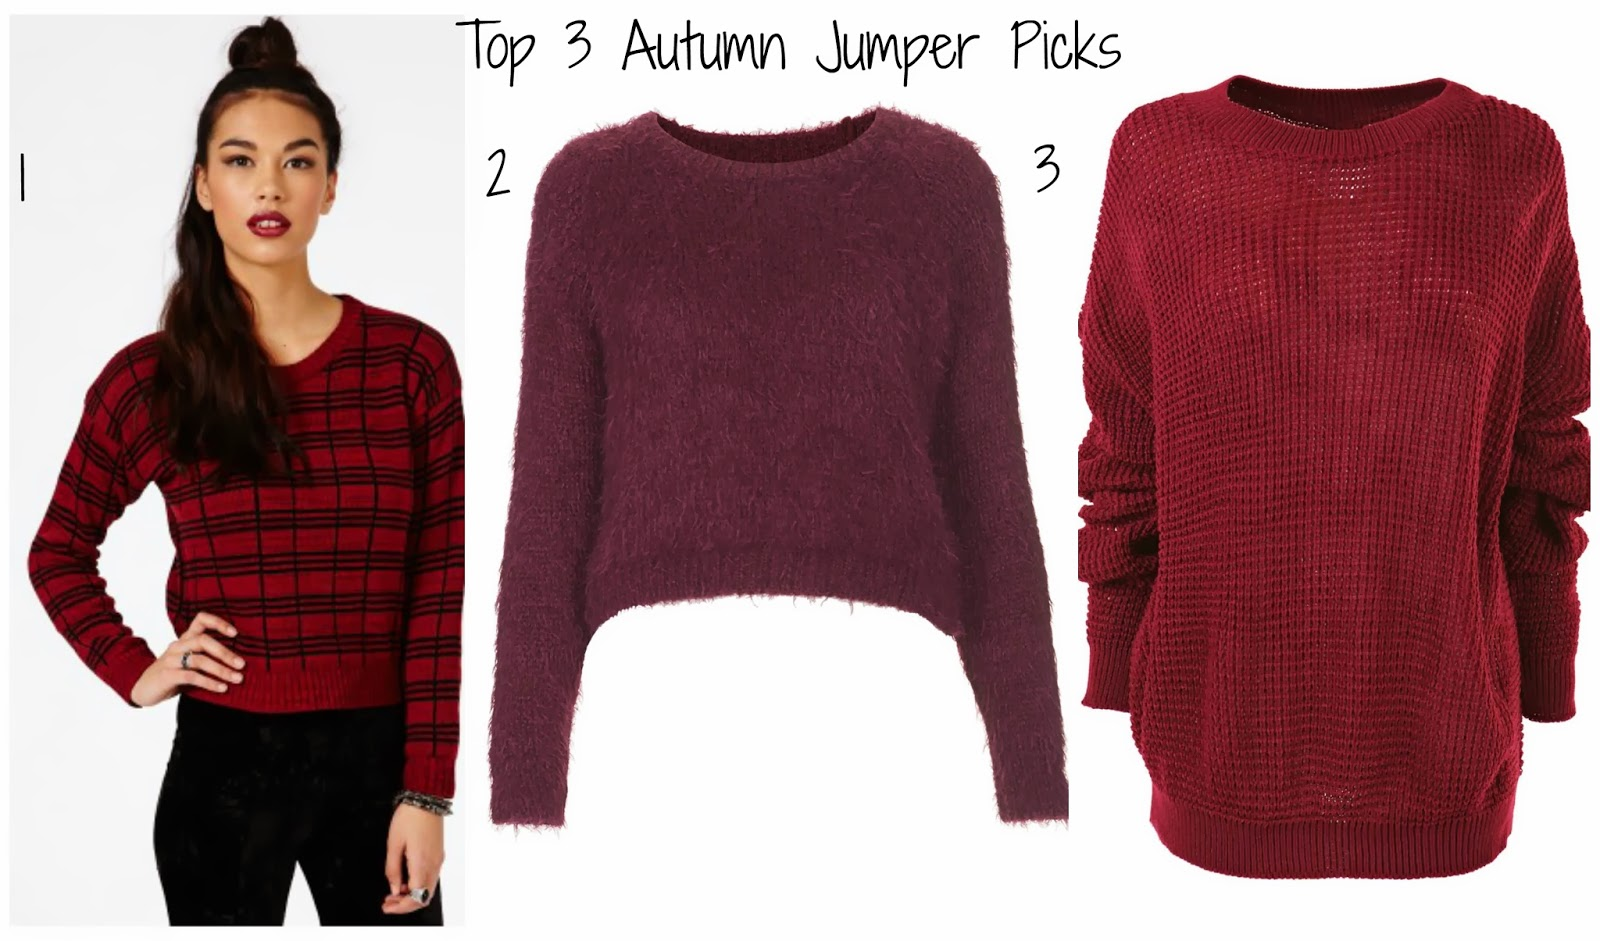 Top 3 Autumn Jumper Picks